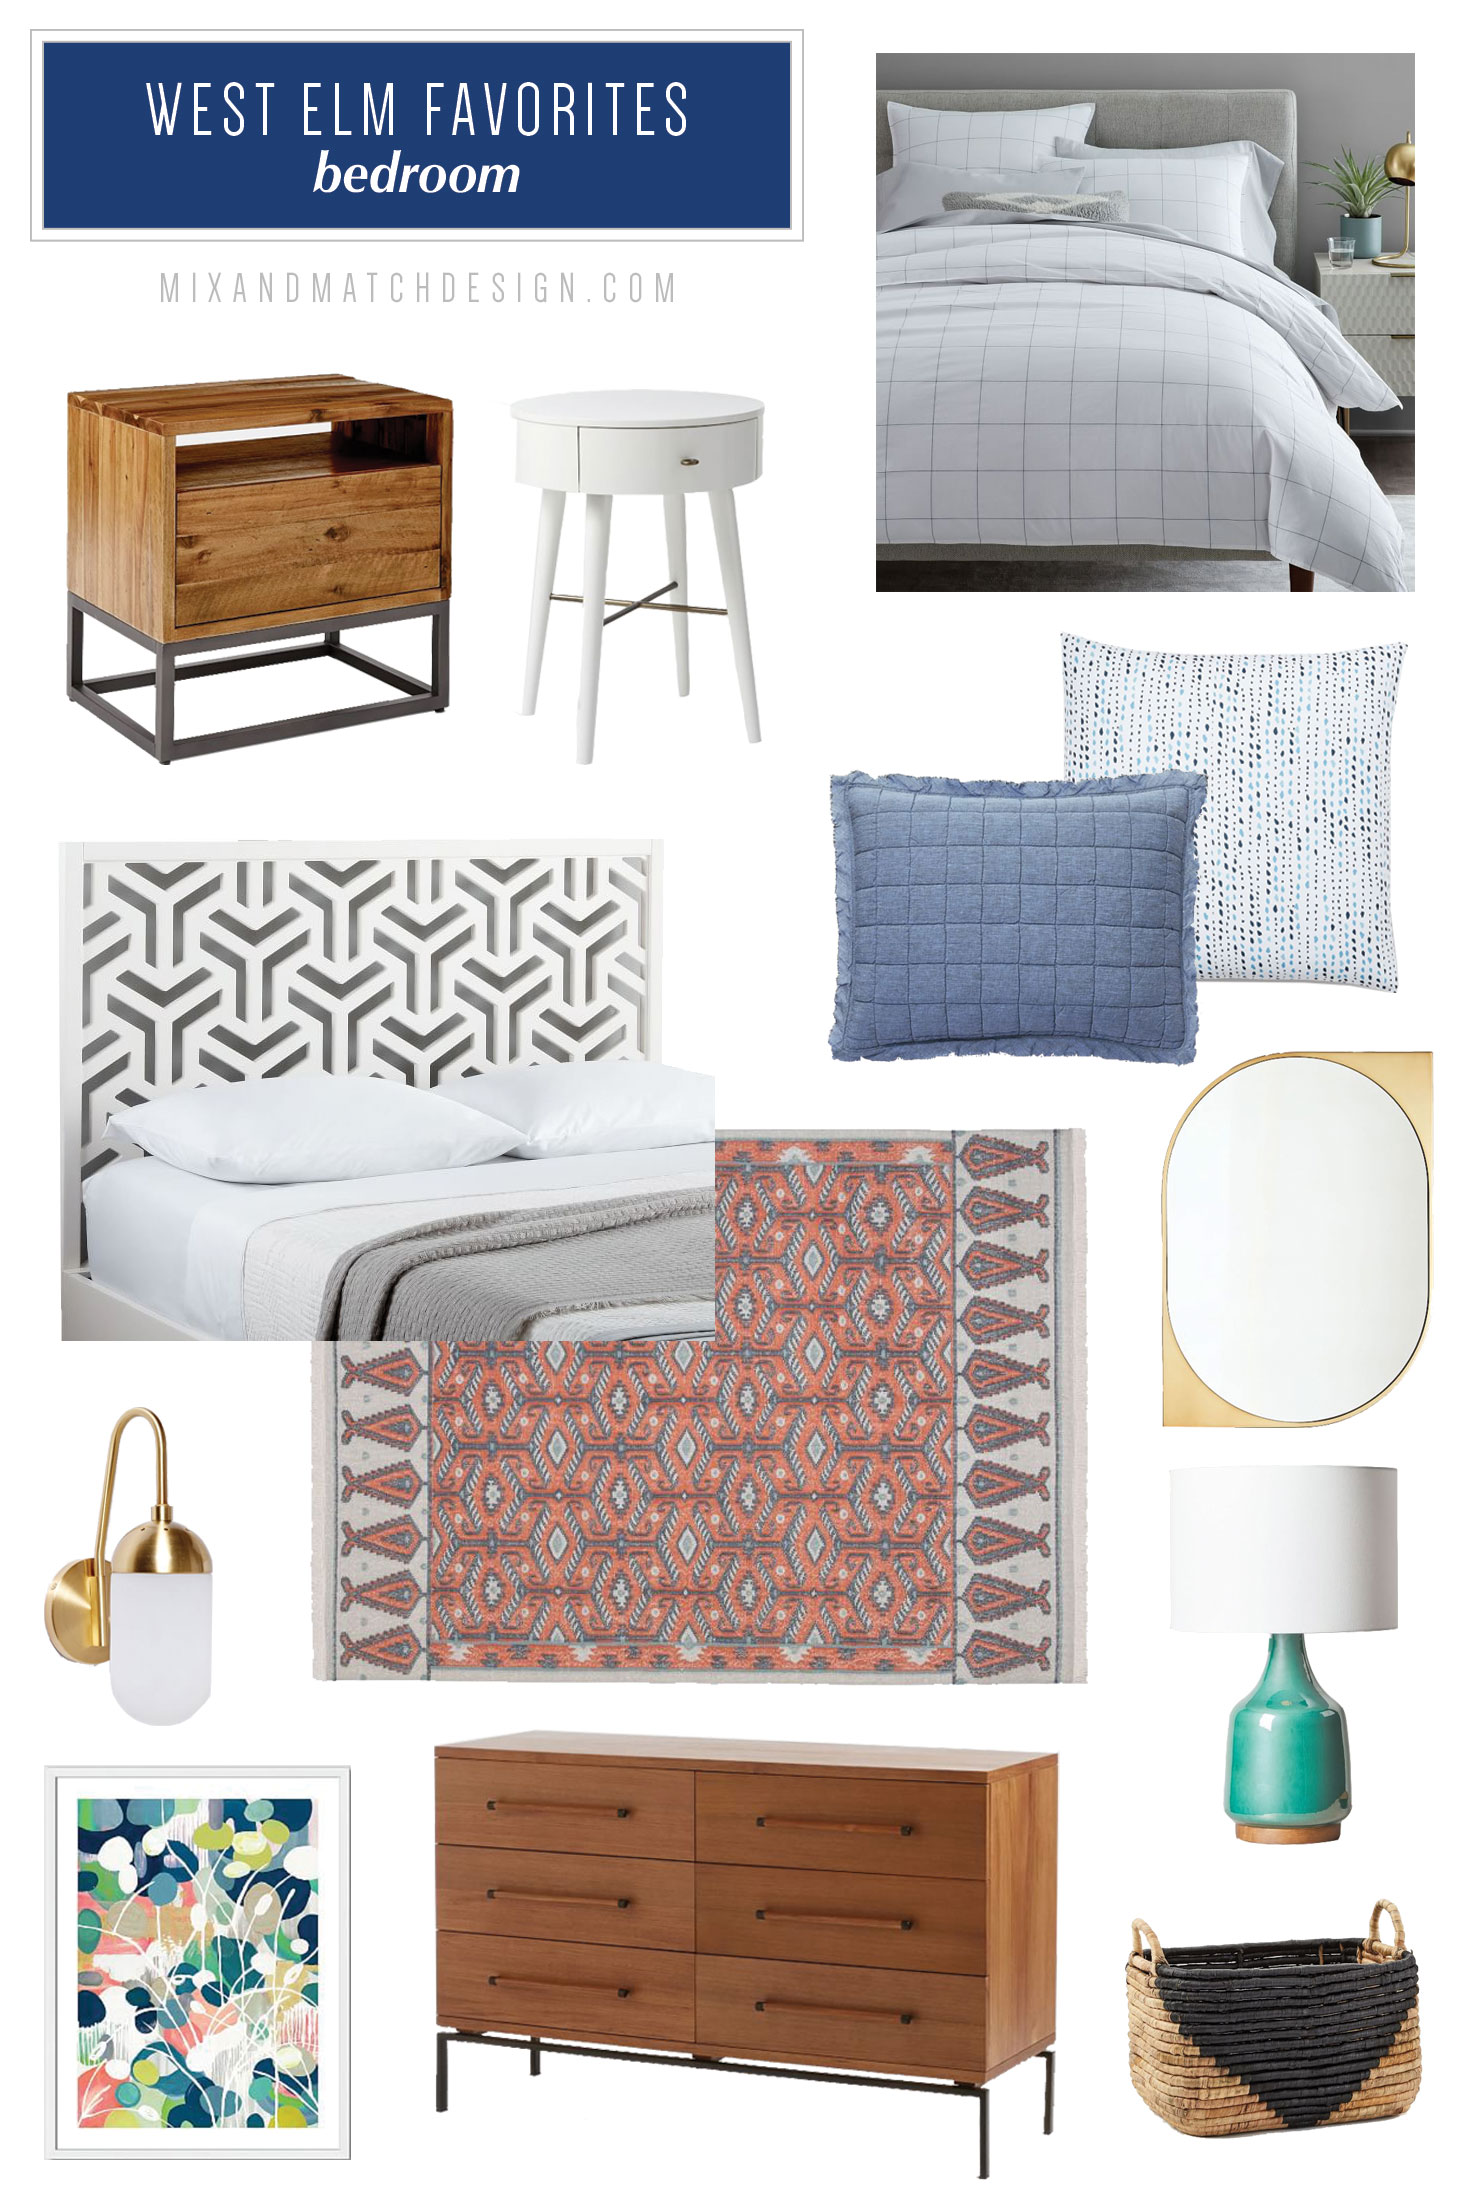 A roundup of the furniture and decor that caught my eye recently at West Elm. If you're looking for recommendations for mid-century modern, industrial, and boho items for your bedroom, be sure to check out this blog post with tons of ideas for decorating your home.